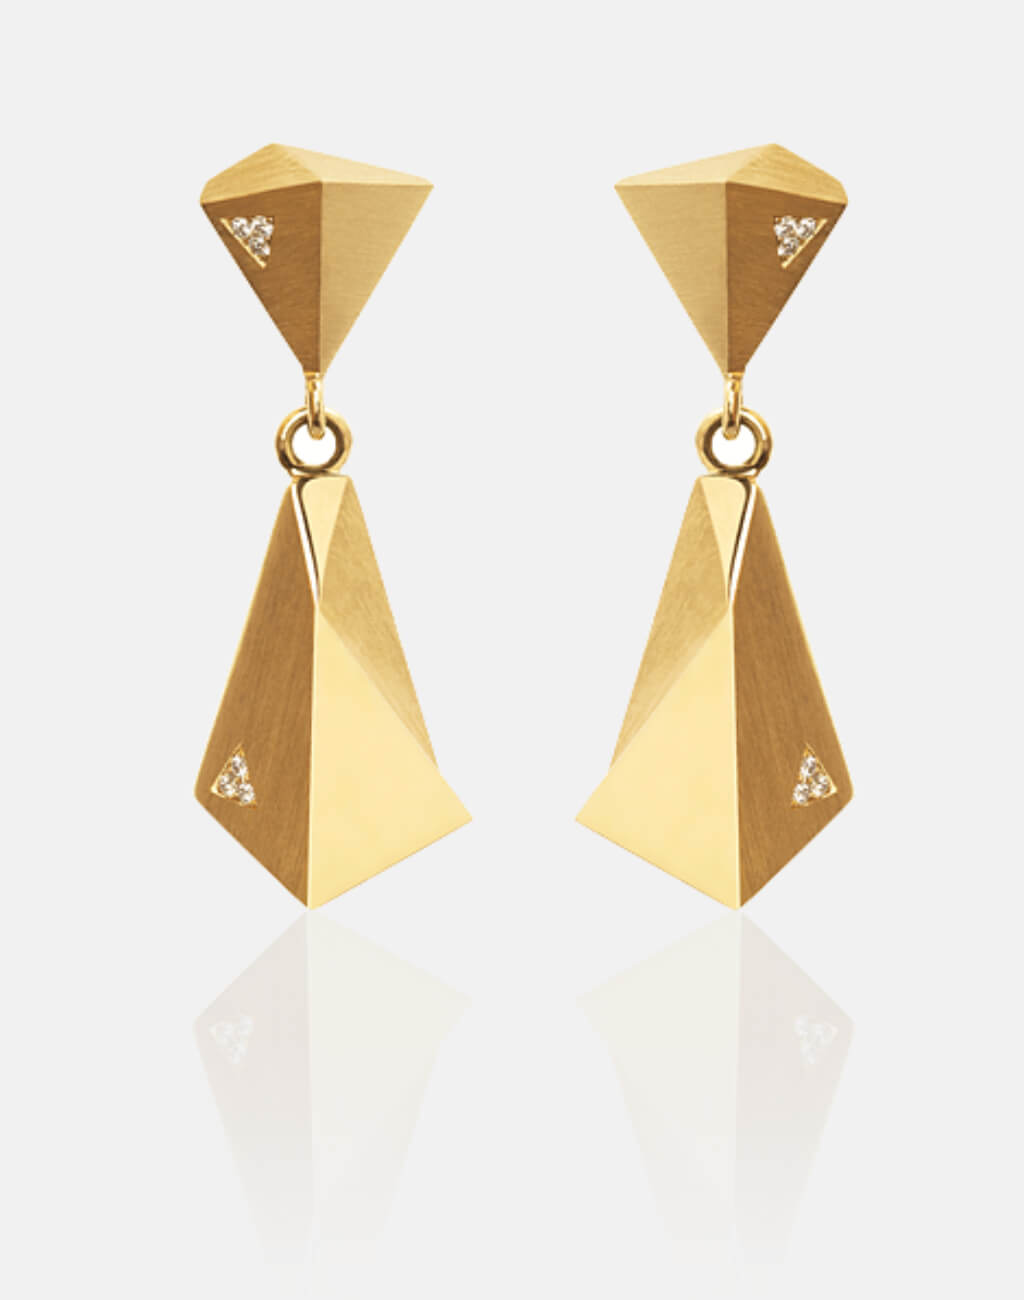 Stealth | Ohrringe, Ohrhänger 750/- Gelbgold, 12 Brillanten, Diamanten | earrings 18kt yellow gold, diamonds | SYNO-Schmuck.com